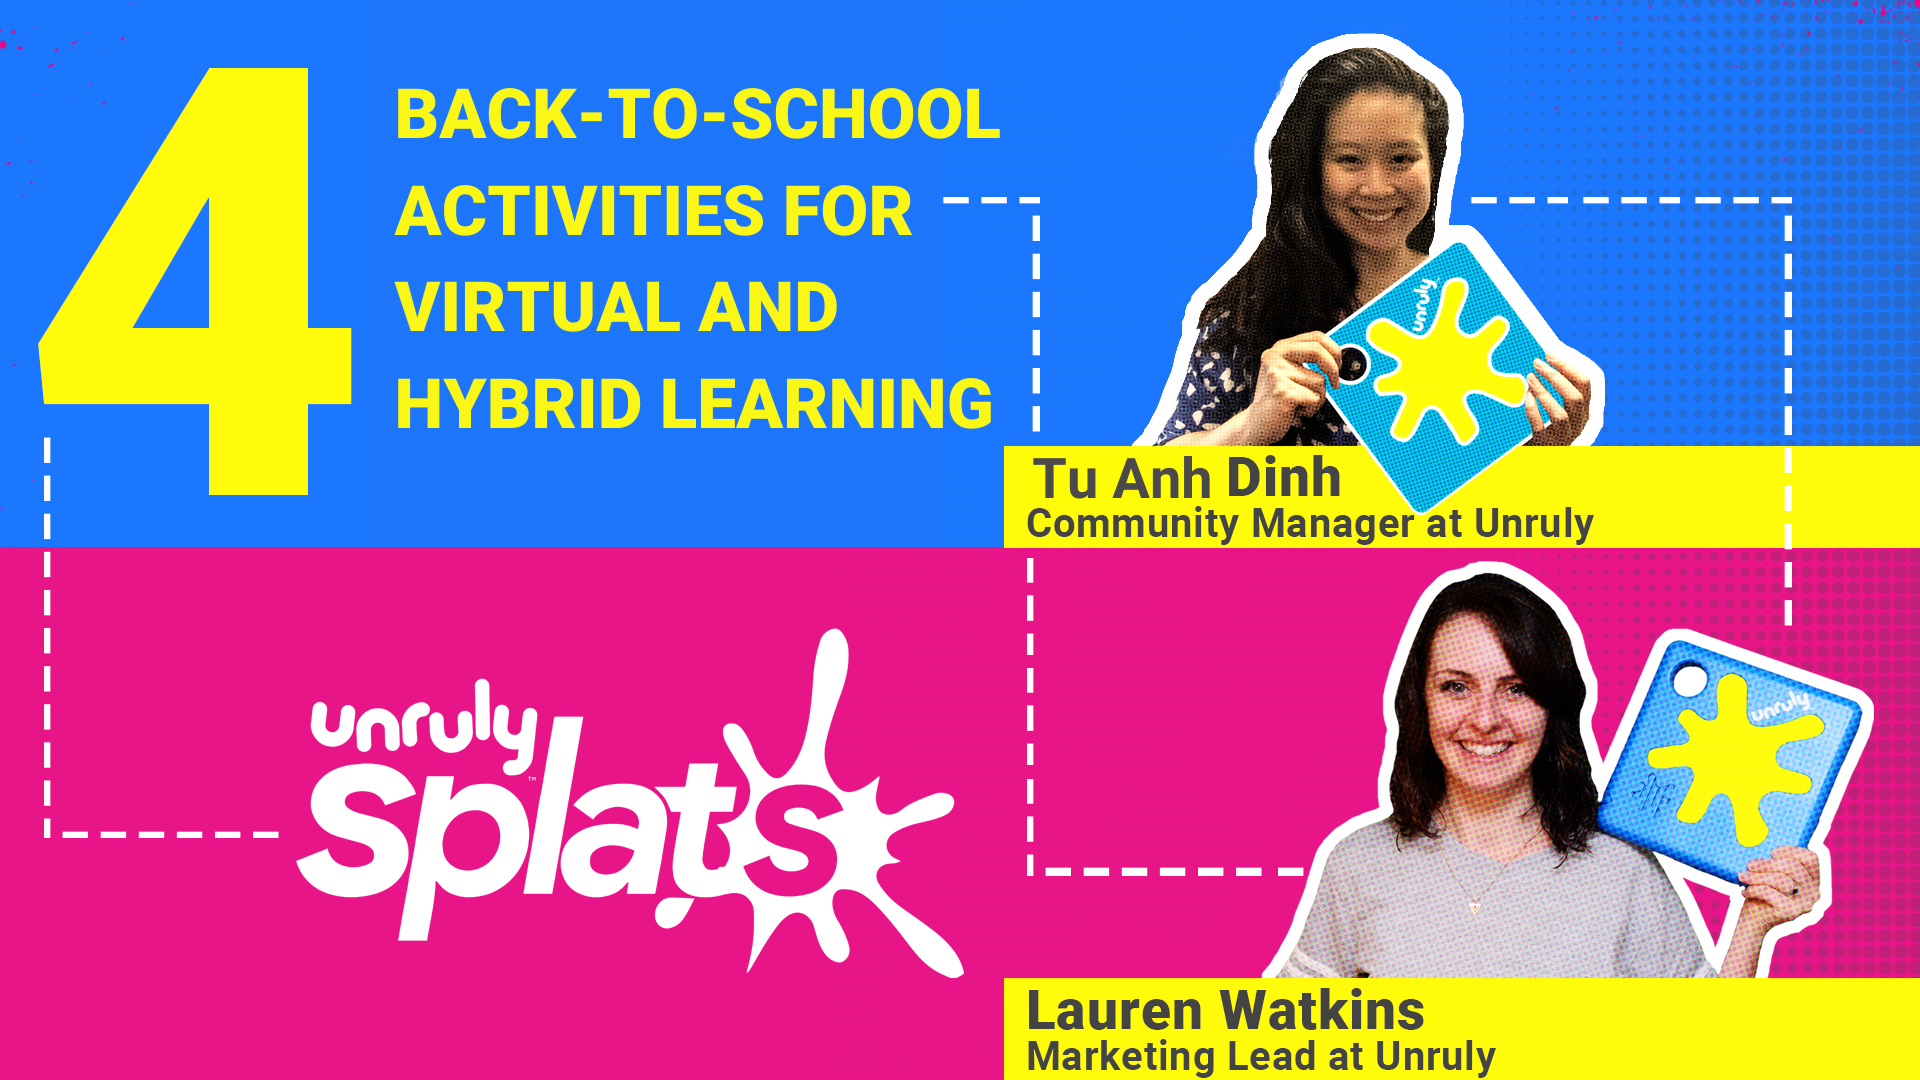 STEM Webinar - Virtual Coding Activities for Back to School